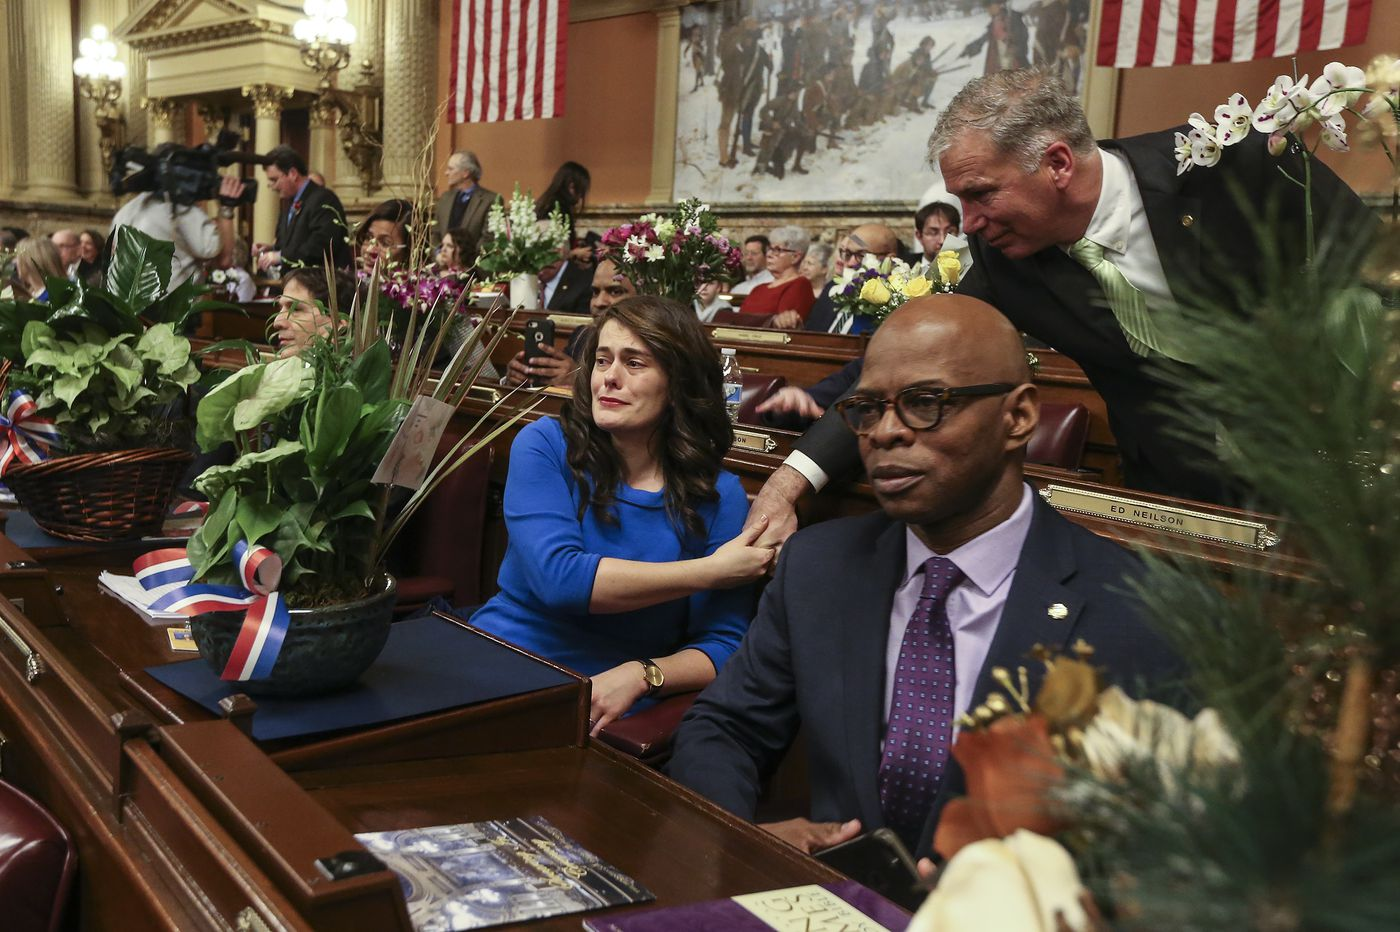 More Democrats, more women — but the GOP still rules in Pa. legislature